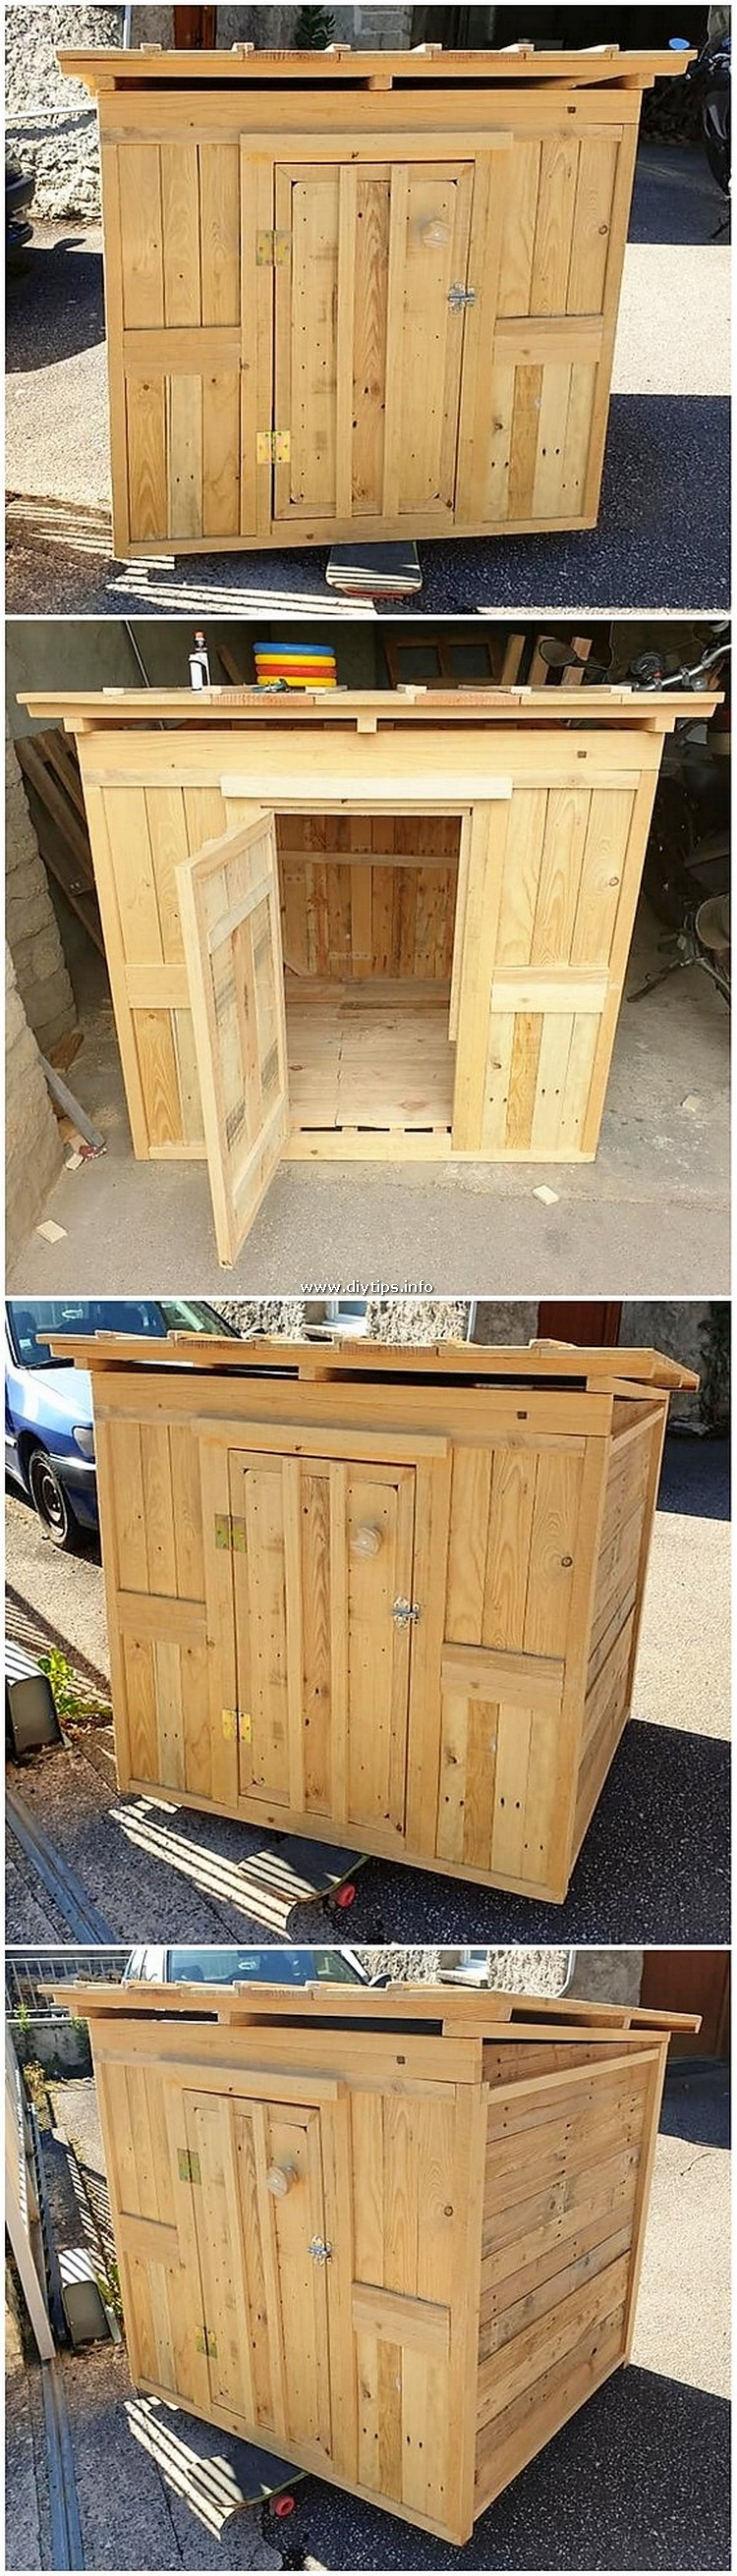 Pallet Mini Cabin or House